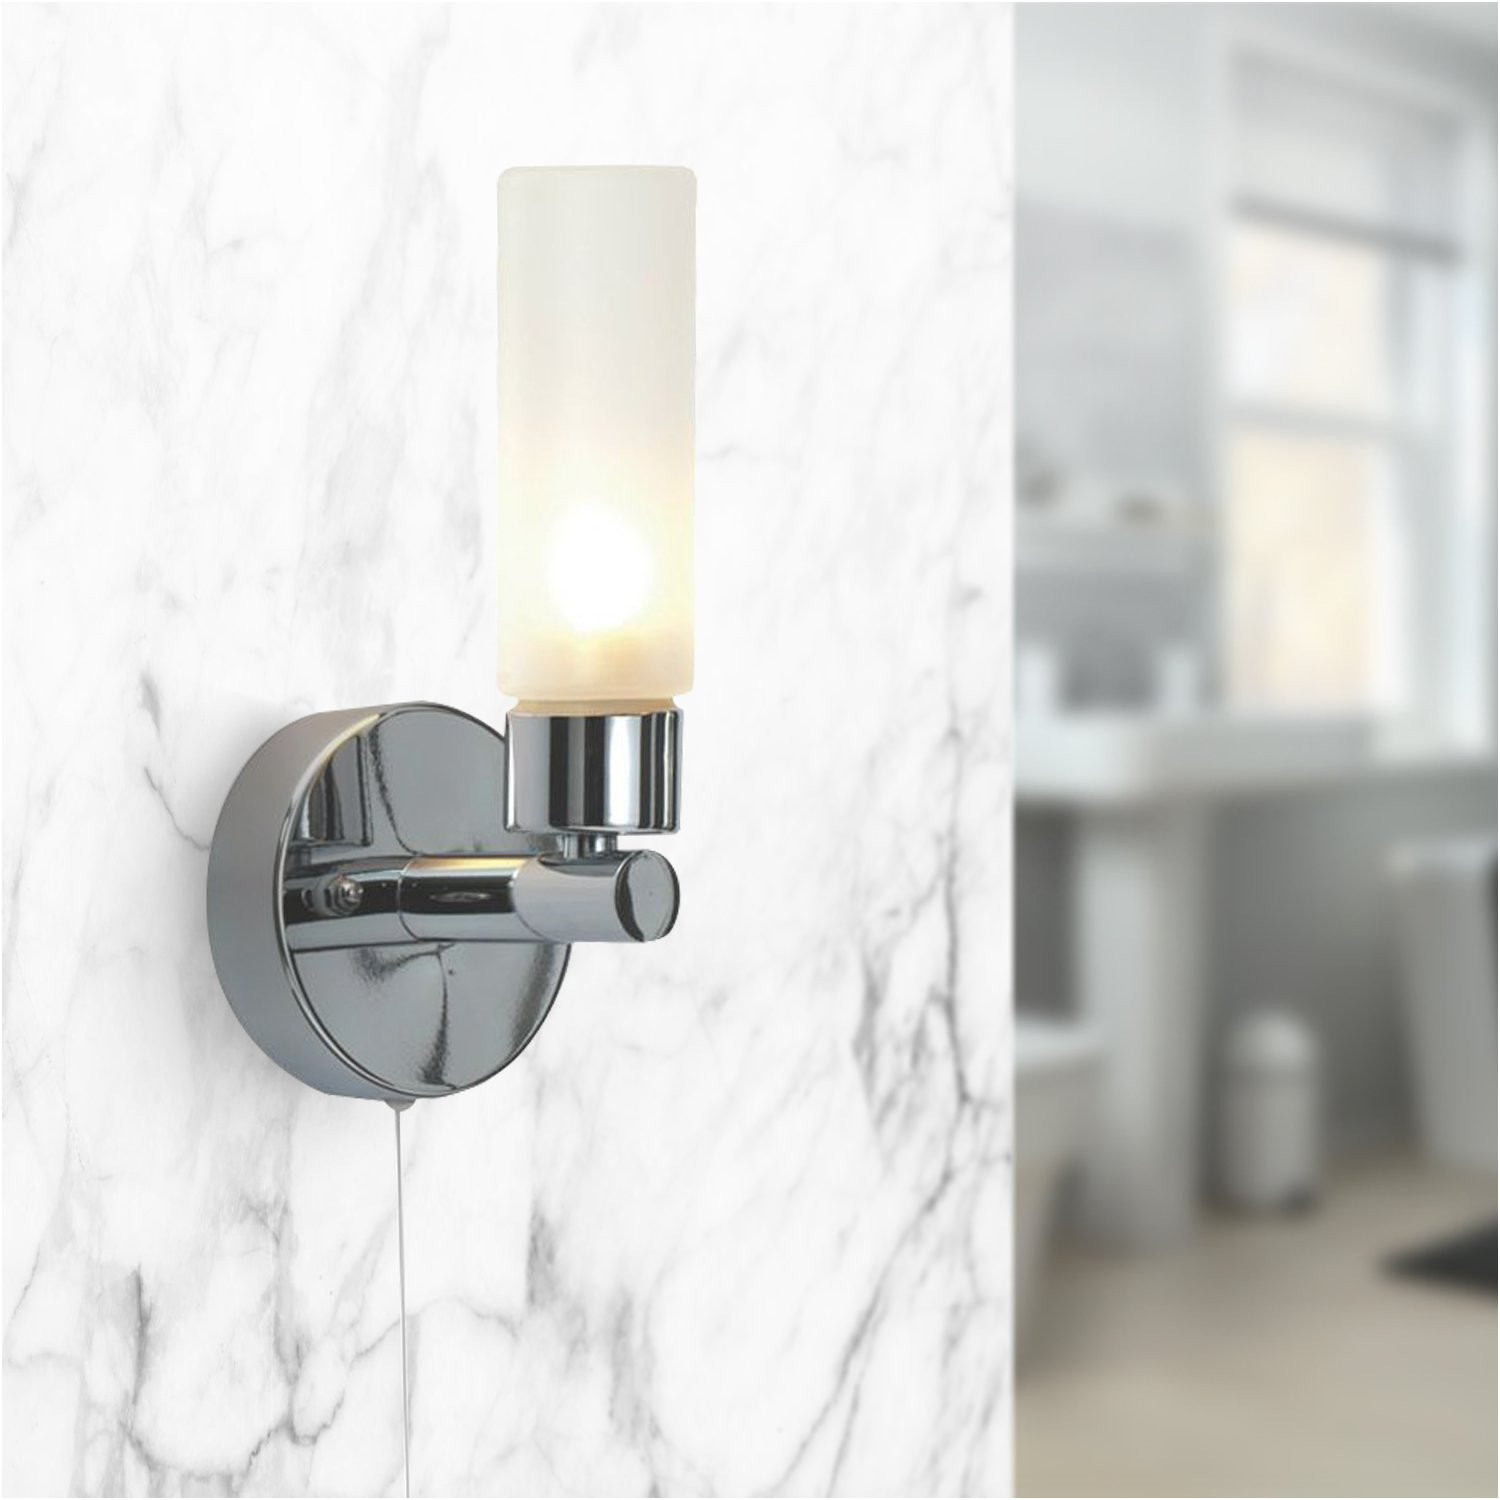 Over Mirror Bathroom Light with Pull Cord Unique Polished Chrome Ip44 Bathroom Wall Light with Pull Cord Switch